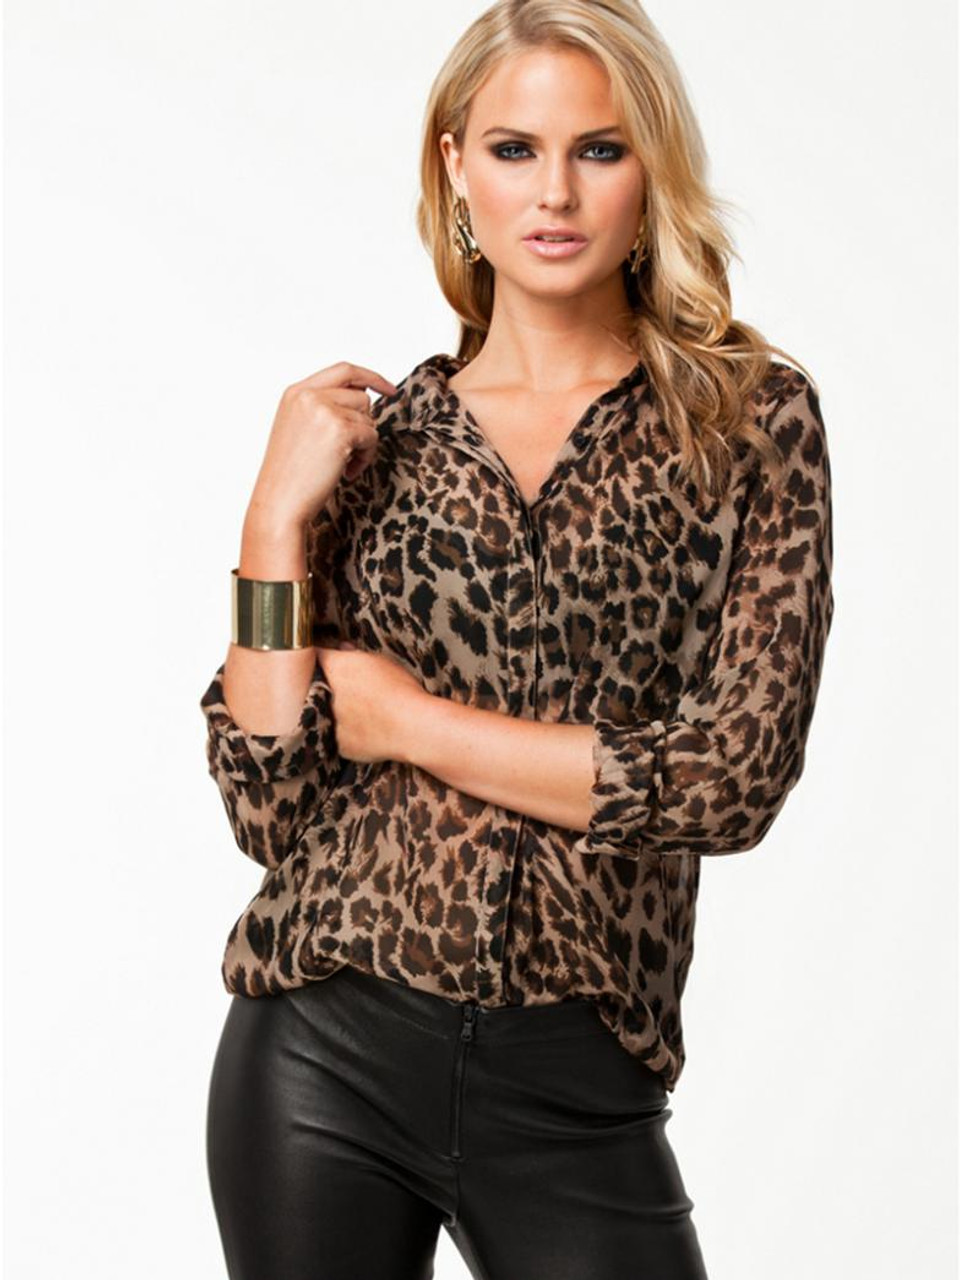 Blouses & Shirts The Best Women Plus Size Leopard Print Casual Long Sleeve Blouse Shirt Pocket Casual Ladies Blouse Top Feminina Female Tops Fashion Shirt